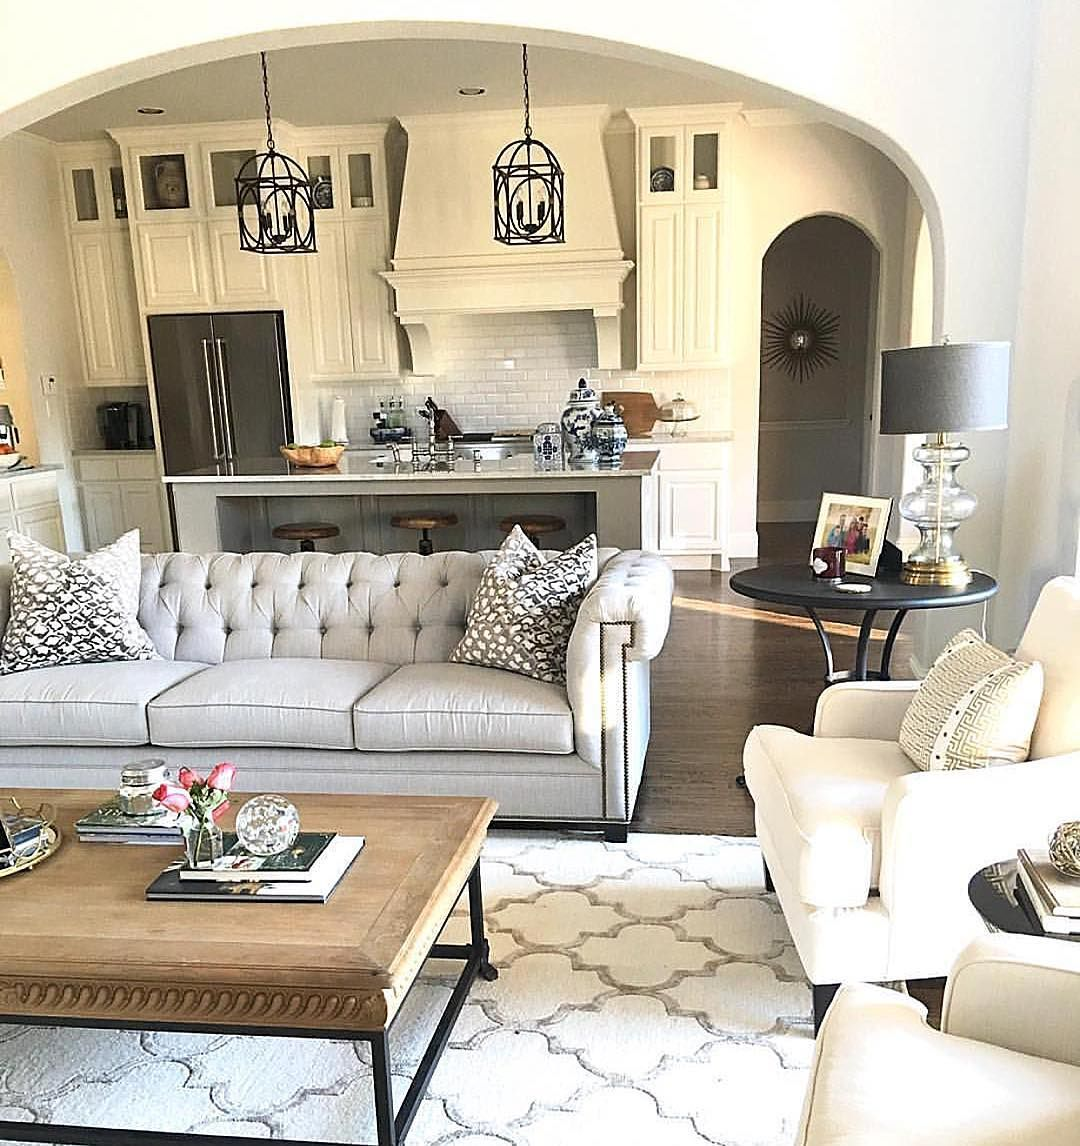 How lucky is @classicstylehome to call this home?! "